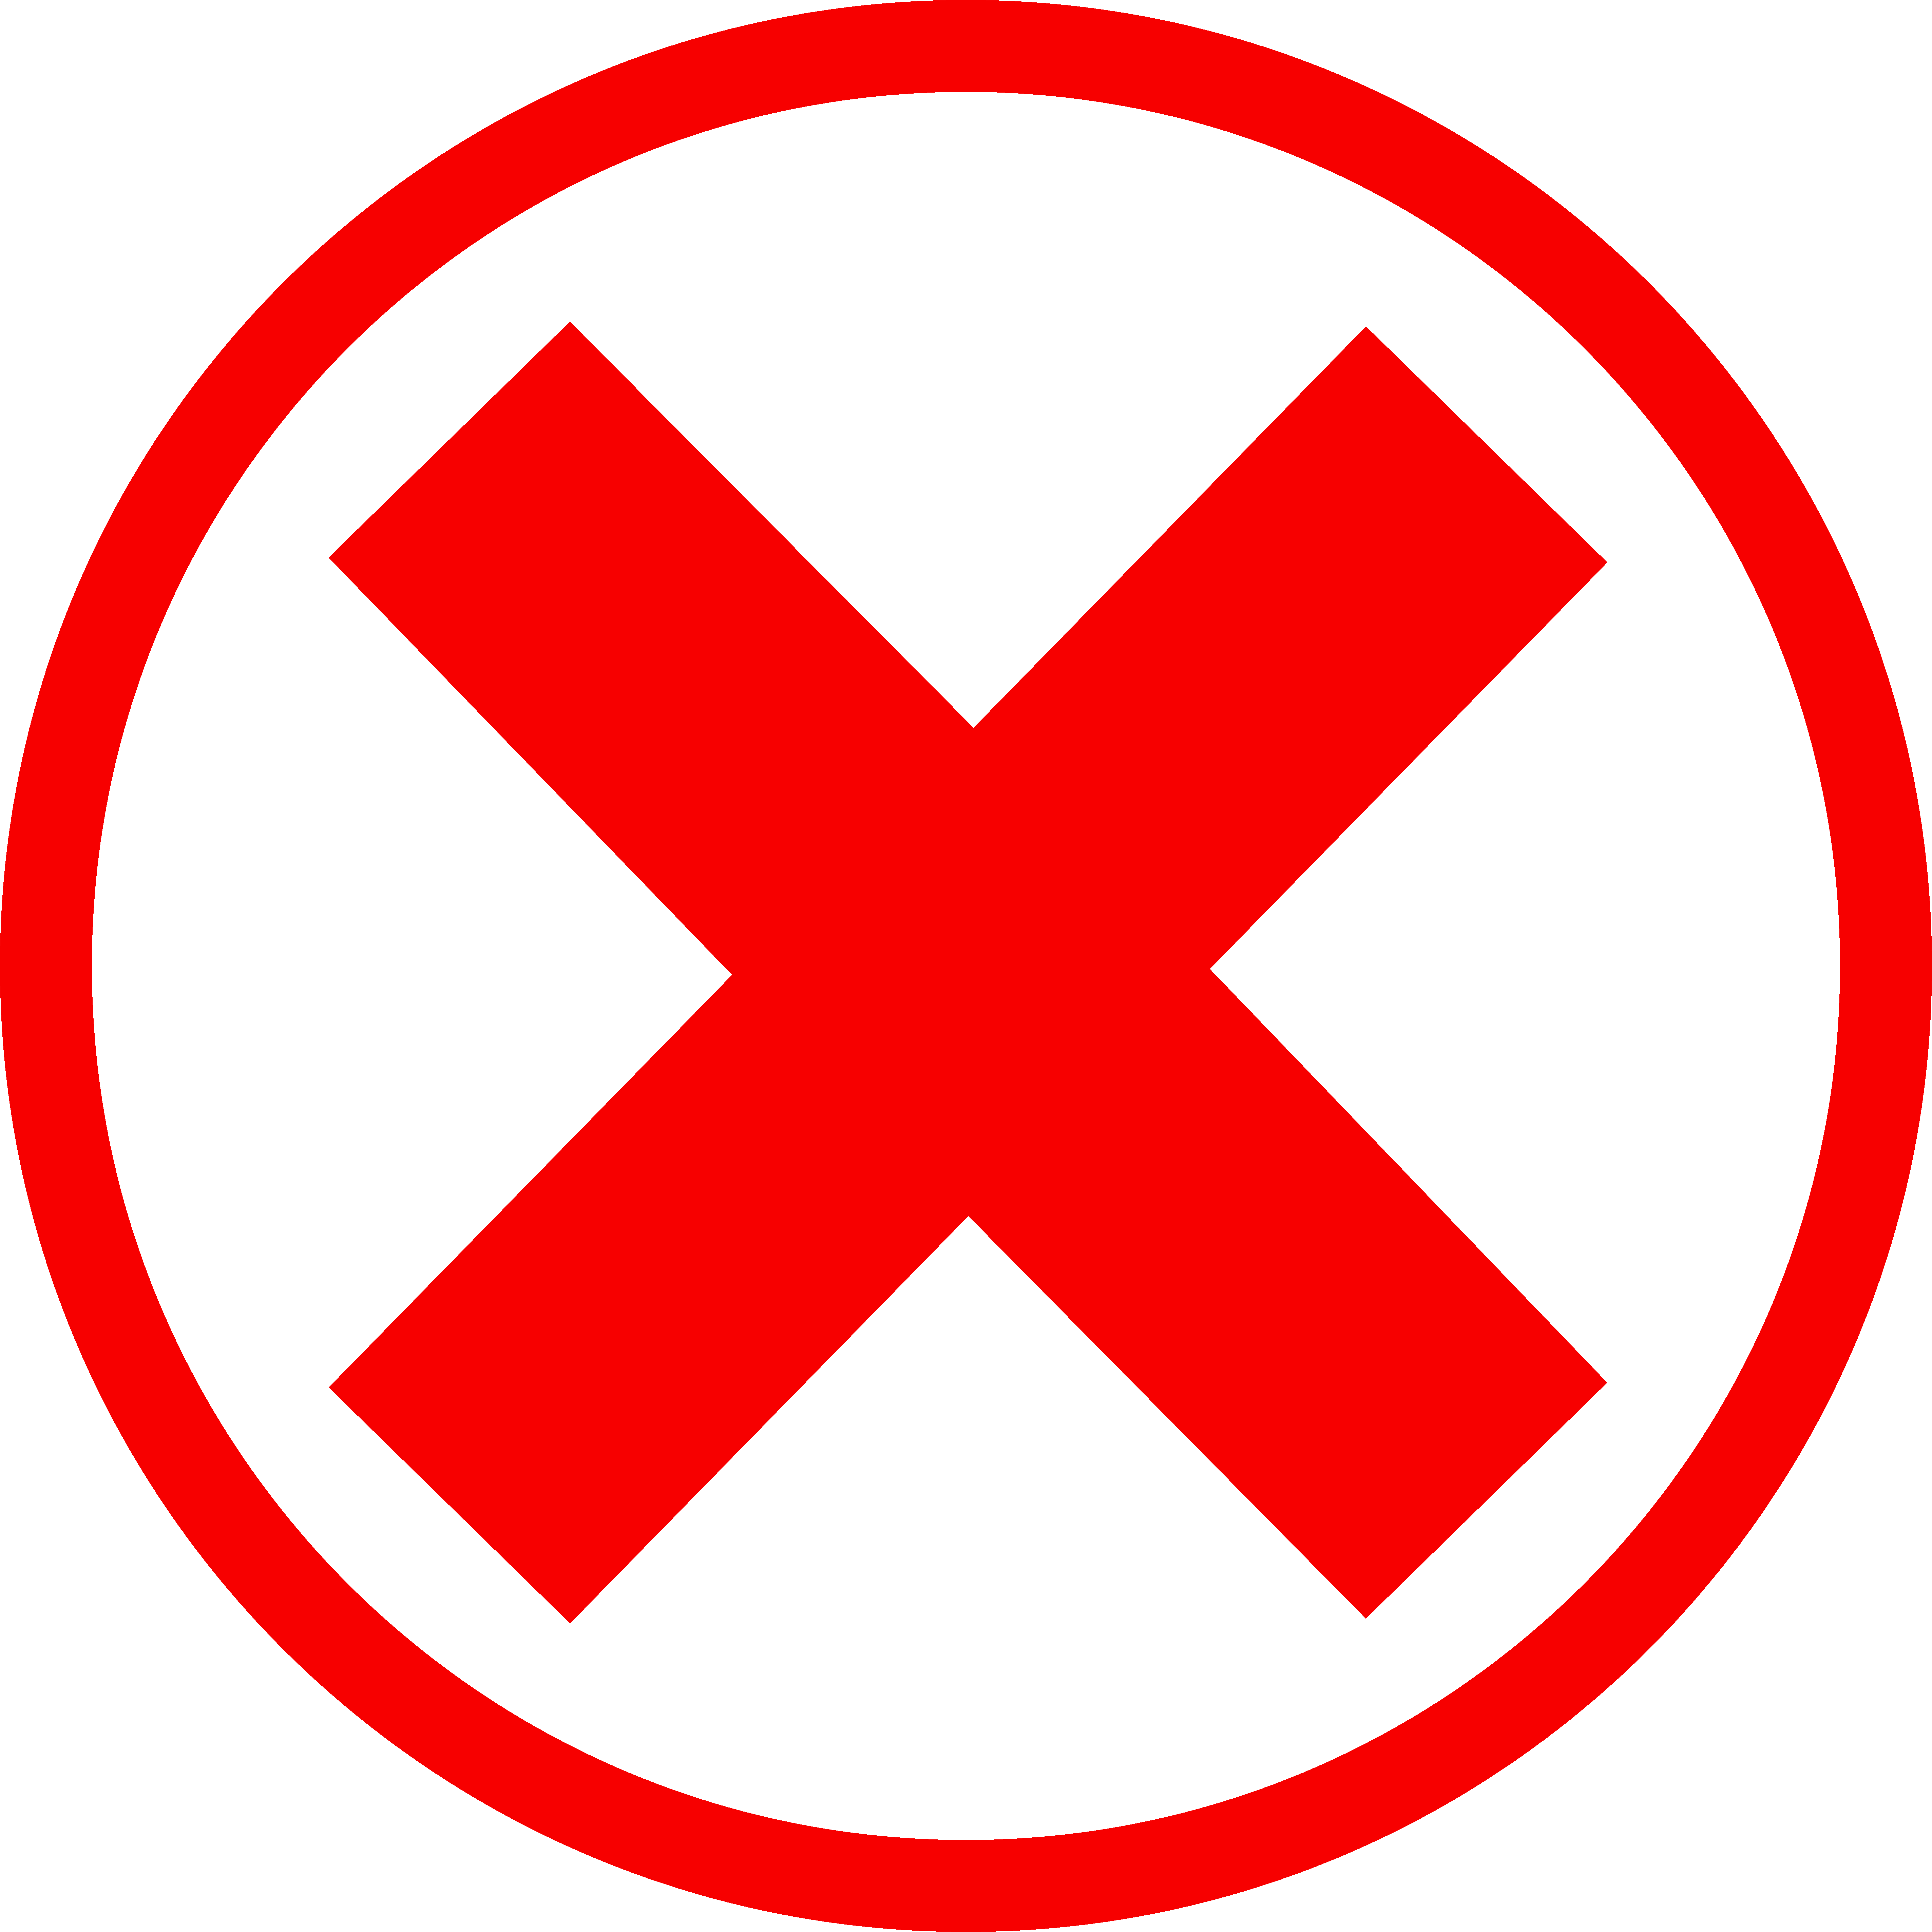 red x mark png